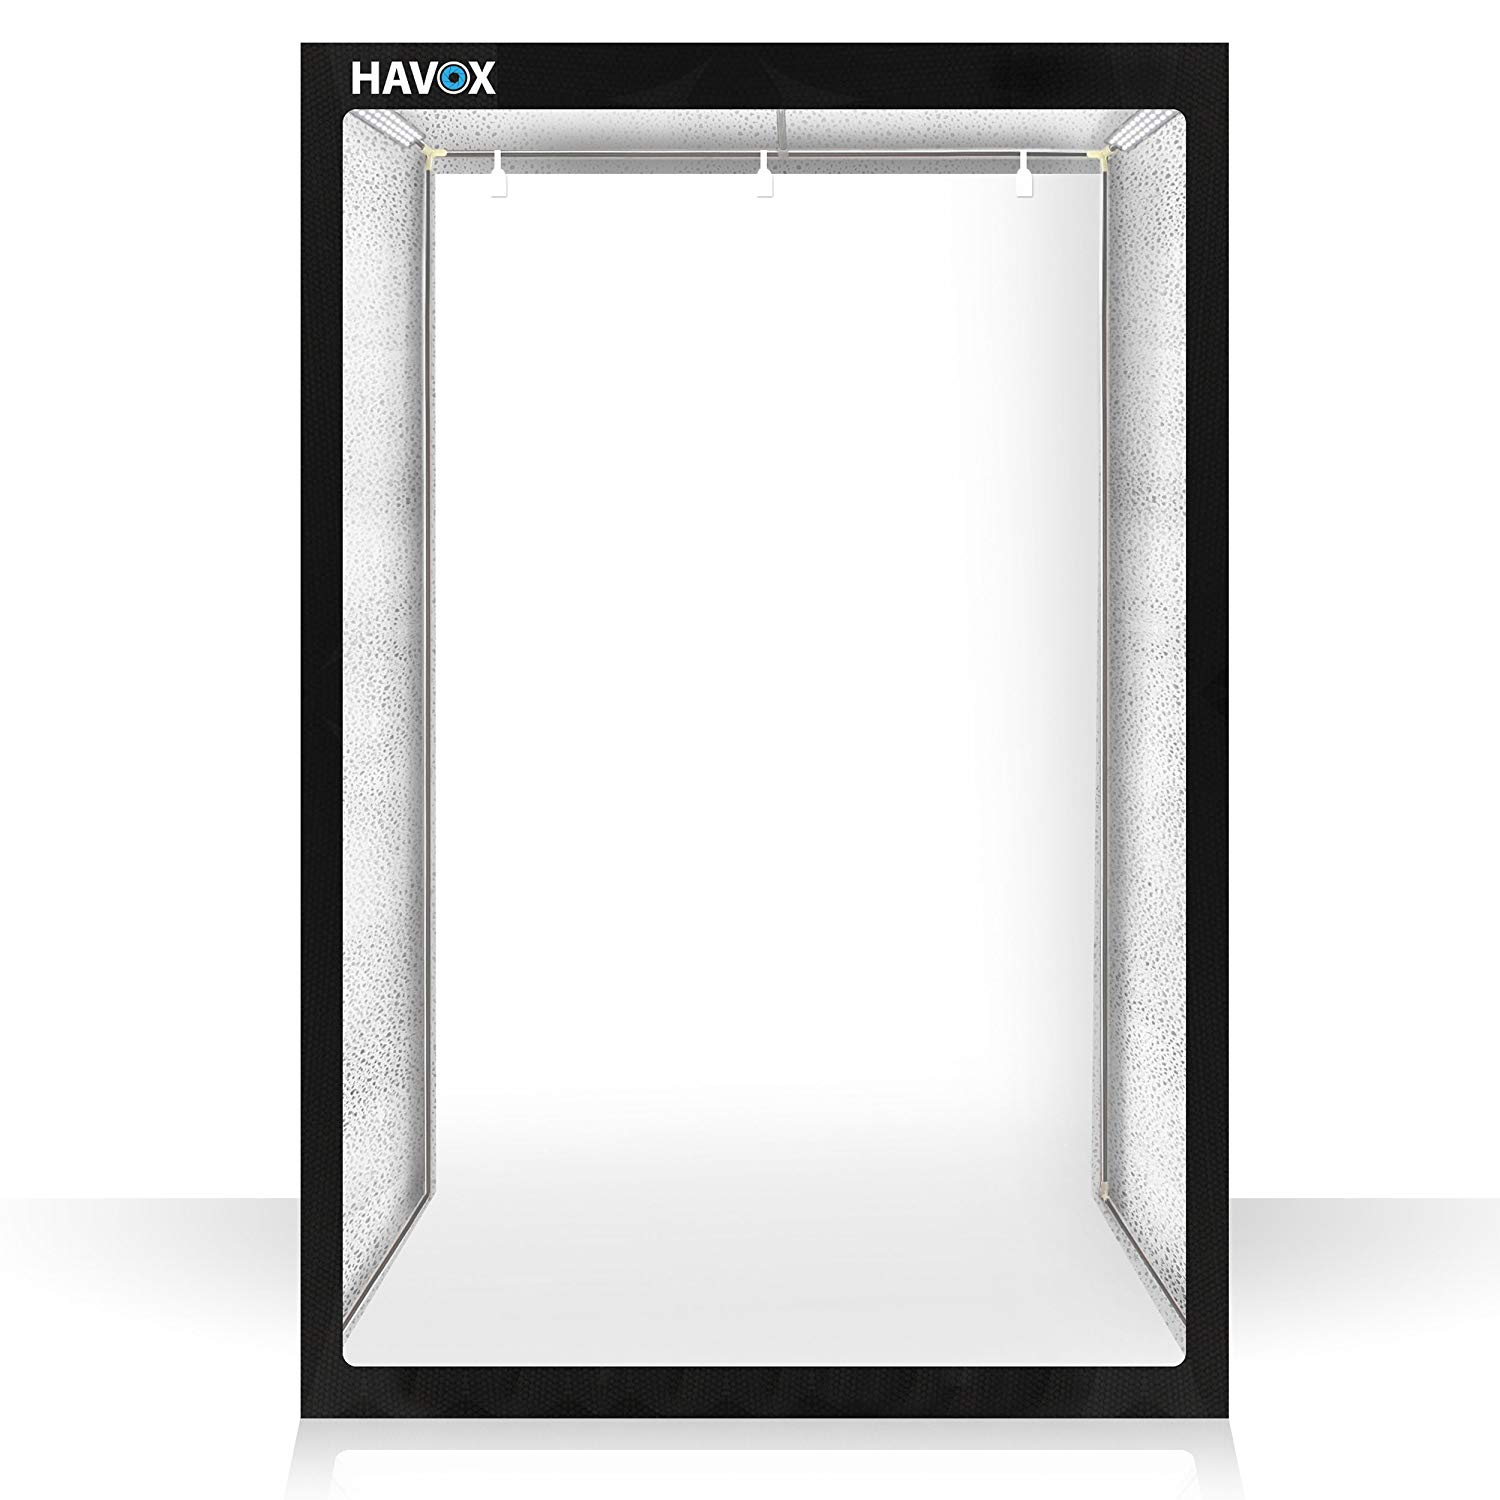 HAVOX - Professional Photo Booth